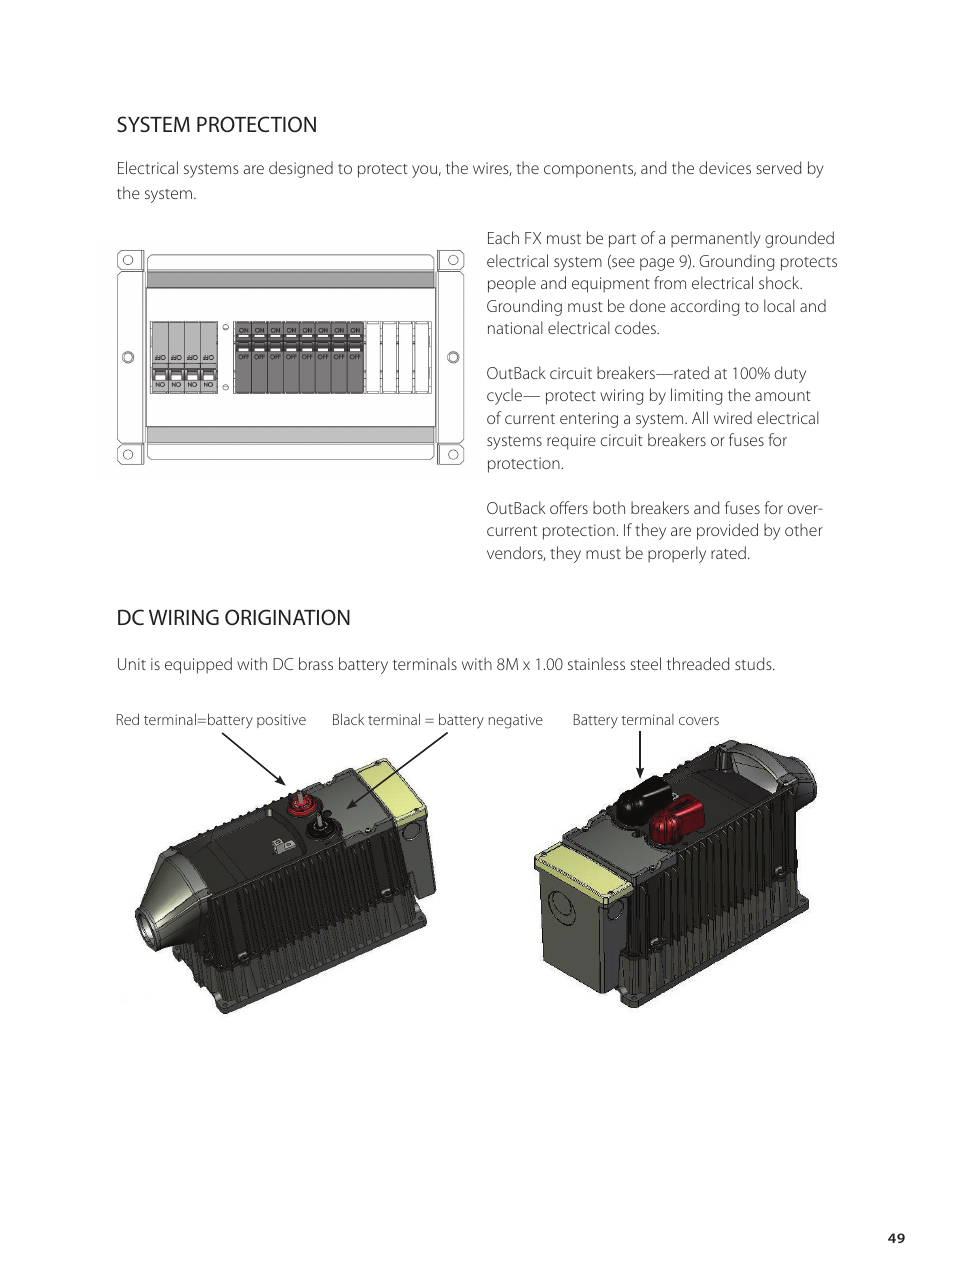 Dc Wiring Origination System Protection Outback Power Systems Inverter Charger Diagram Gvfx Series Installation